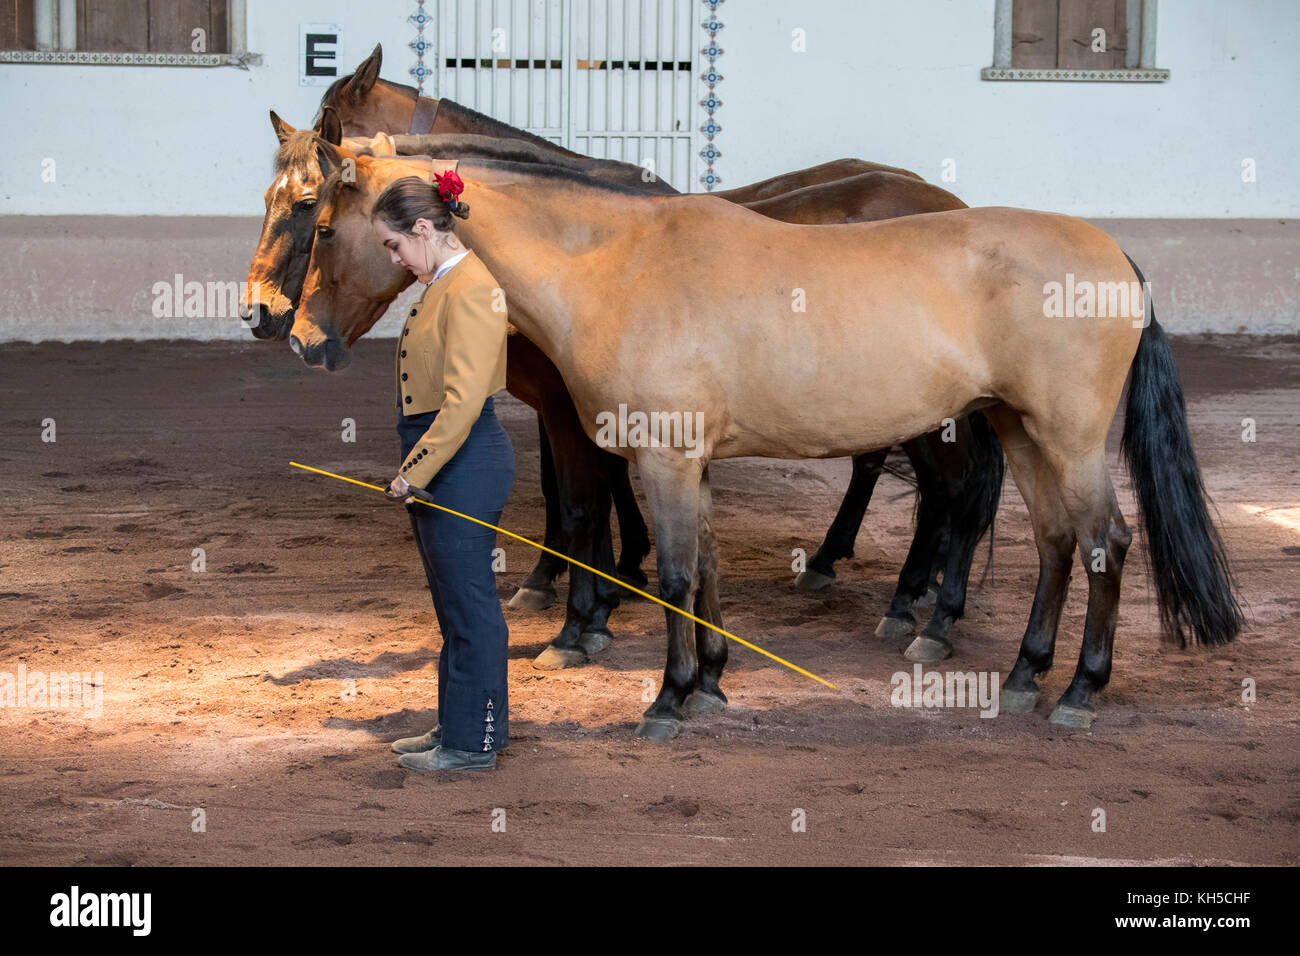 Central America, Costa Rica, Alajuela Province, Rancho San Miguel. Traditional Andalusian horse show, woman in typical - Stock Image